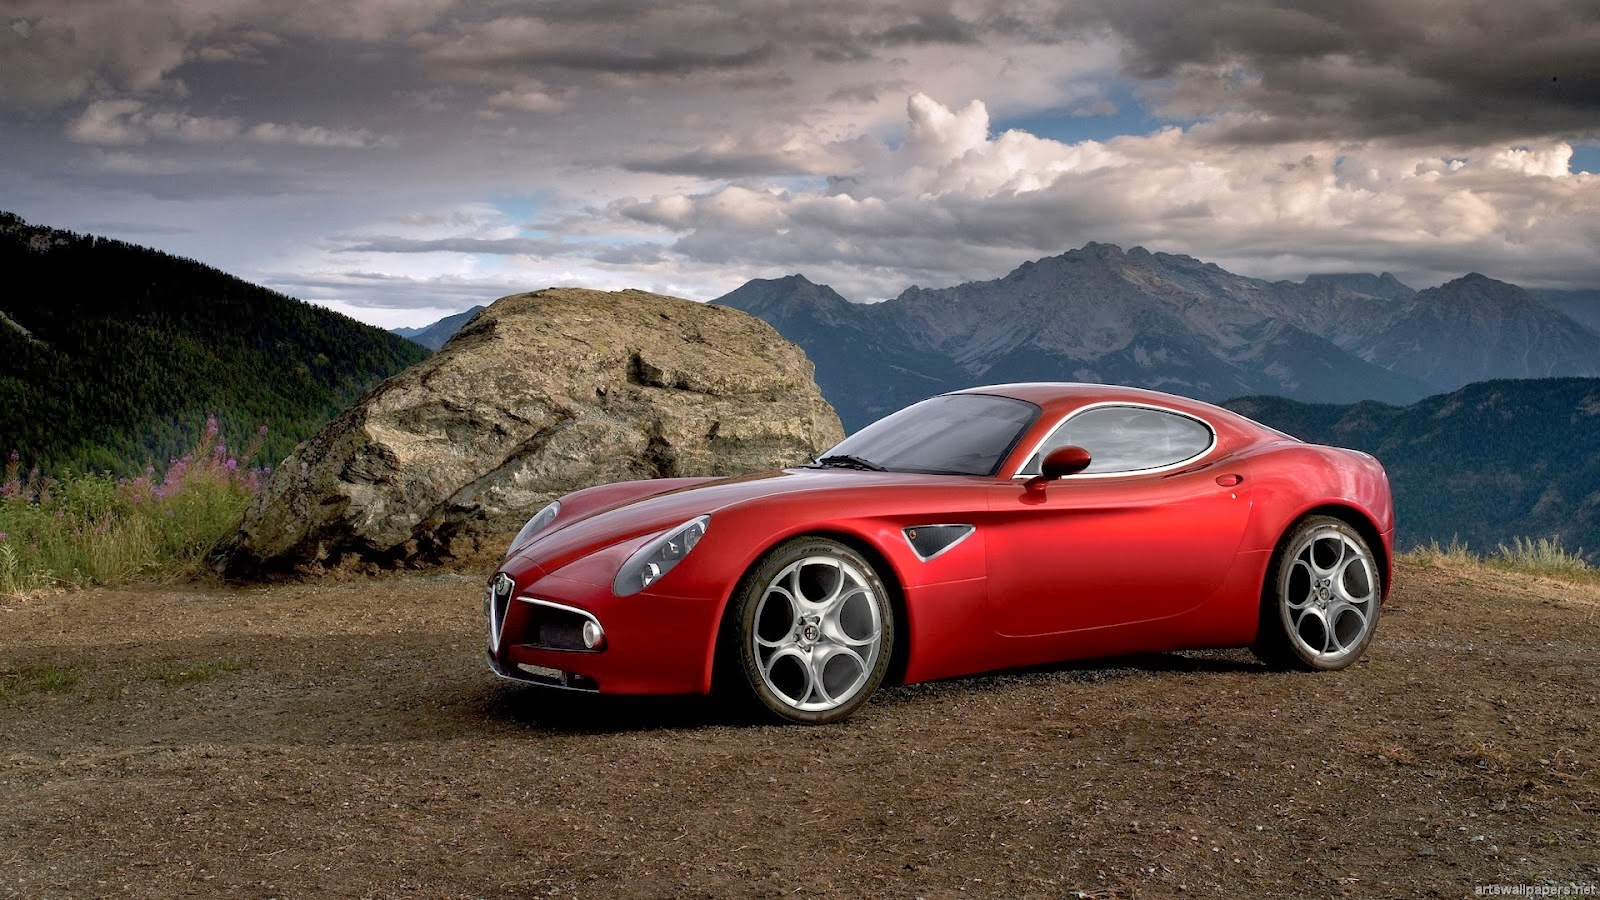 Top Wallpapers Images: World Beautiful Car Wallpapers